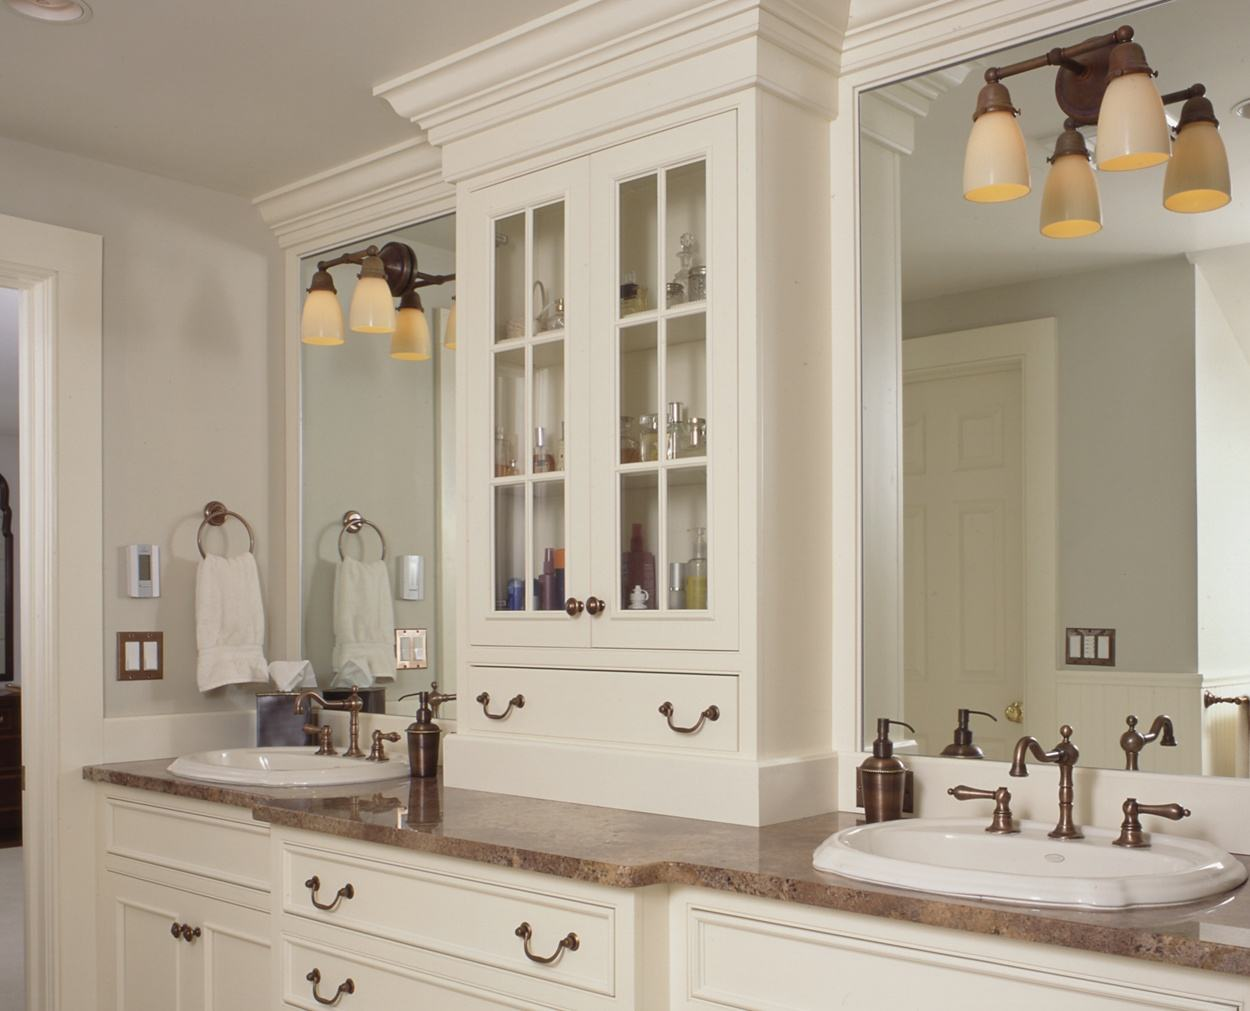 Double vanities with a wall unit in between.